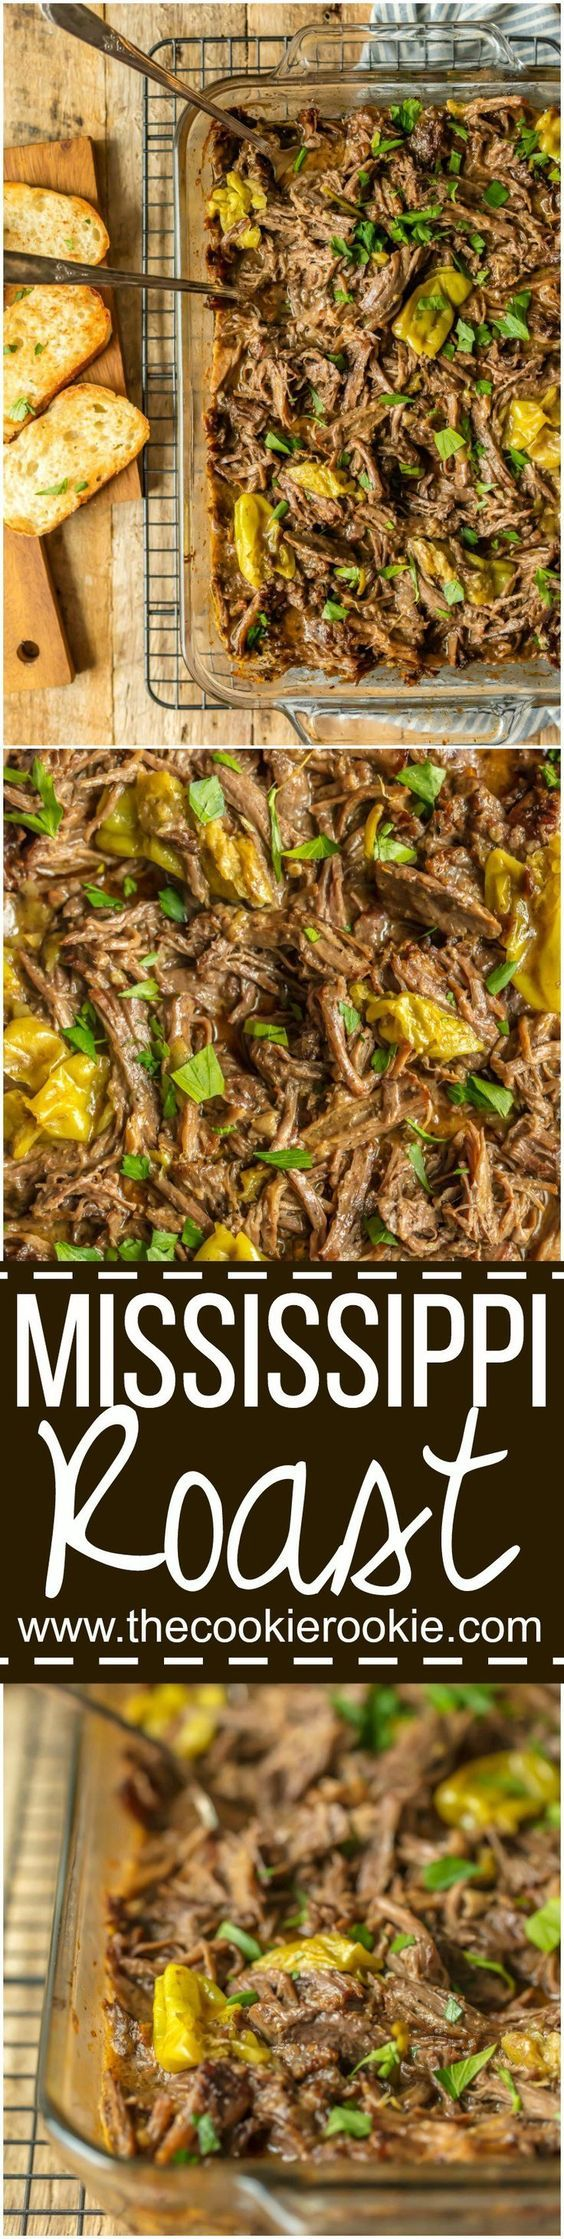 This MISSISSIPPI ROAST is the absolute best slow cooker roast beef you will EVER make! Made famous throughout the years, you just have to try this! Perfect crockpot roast beef for sandwiches, tacos, and beyond! via /beckygallhardin/